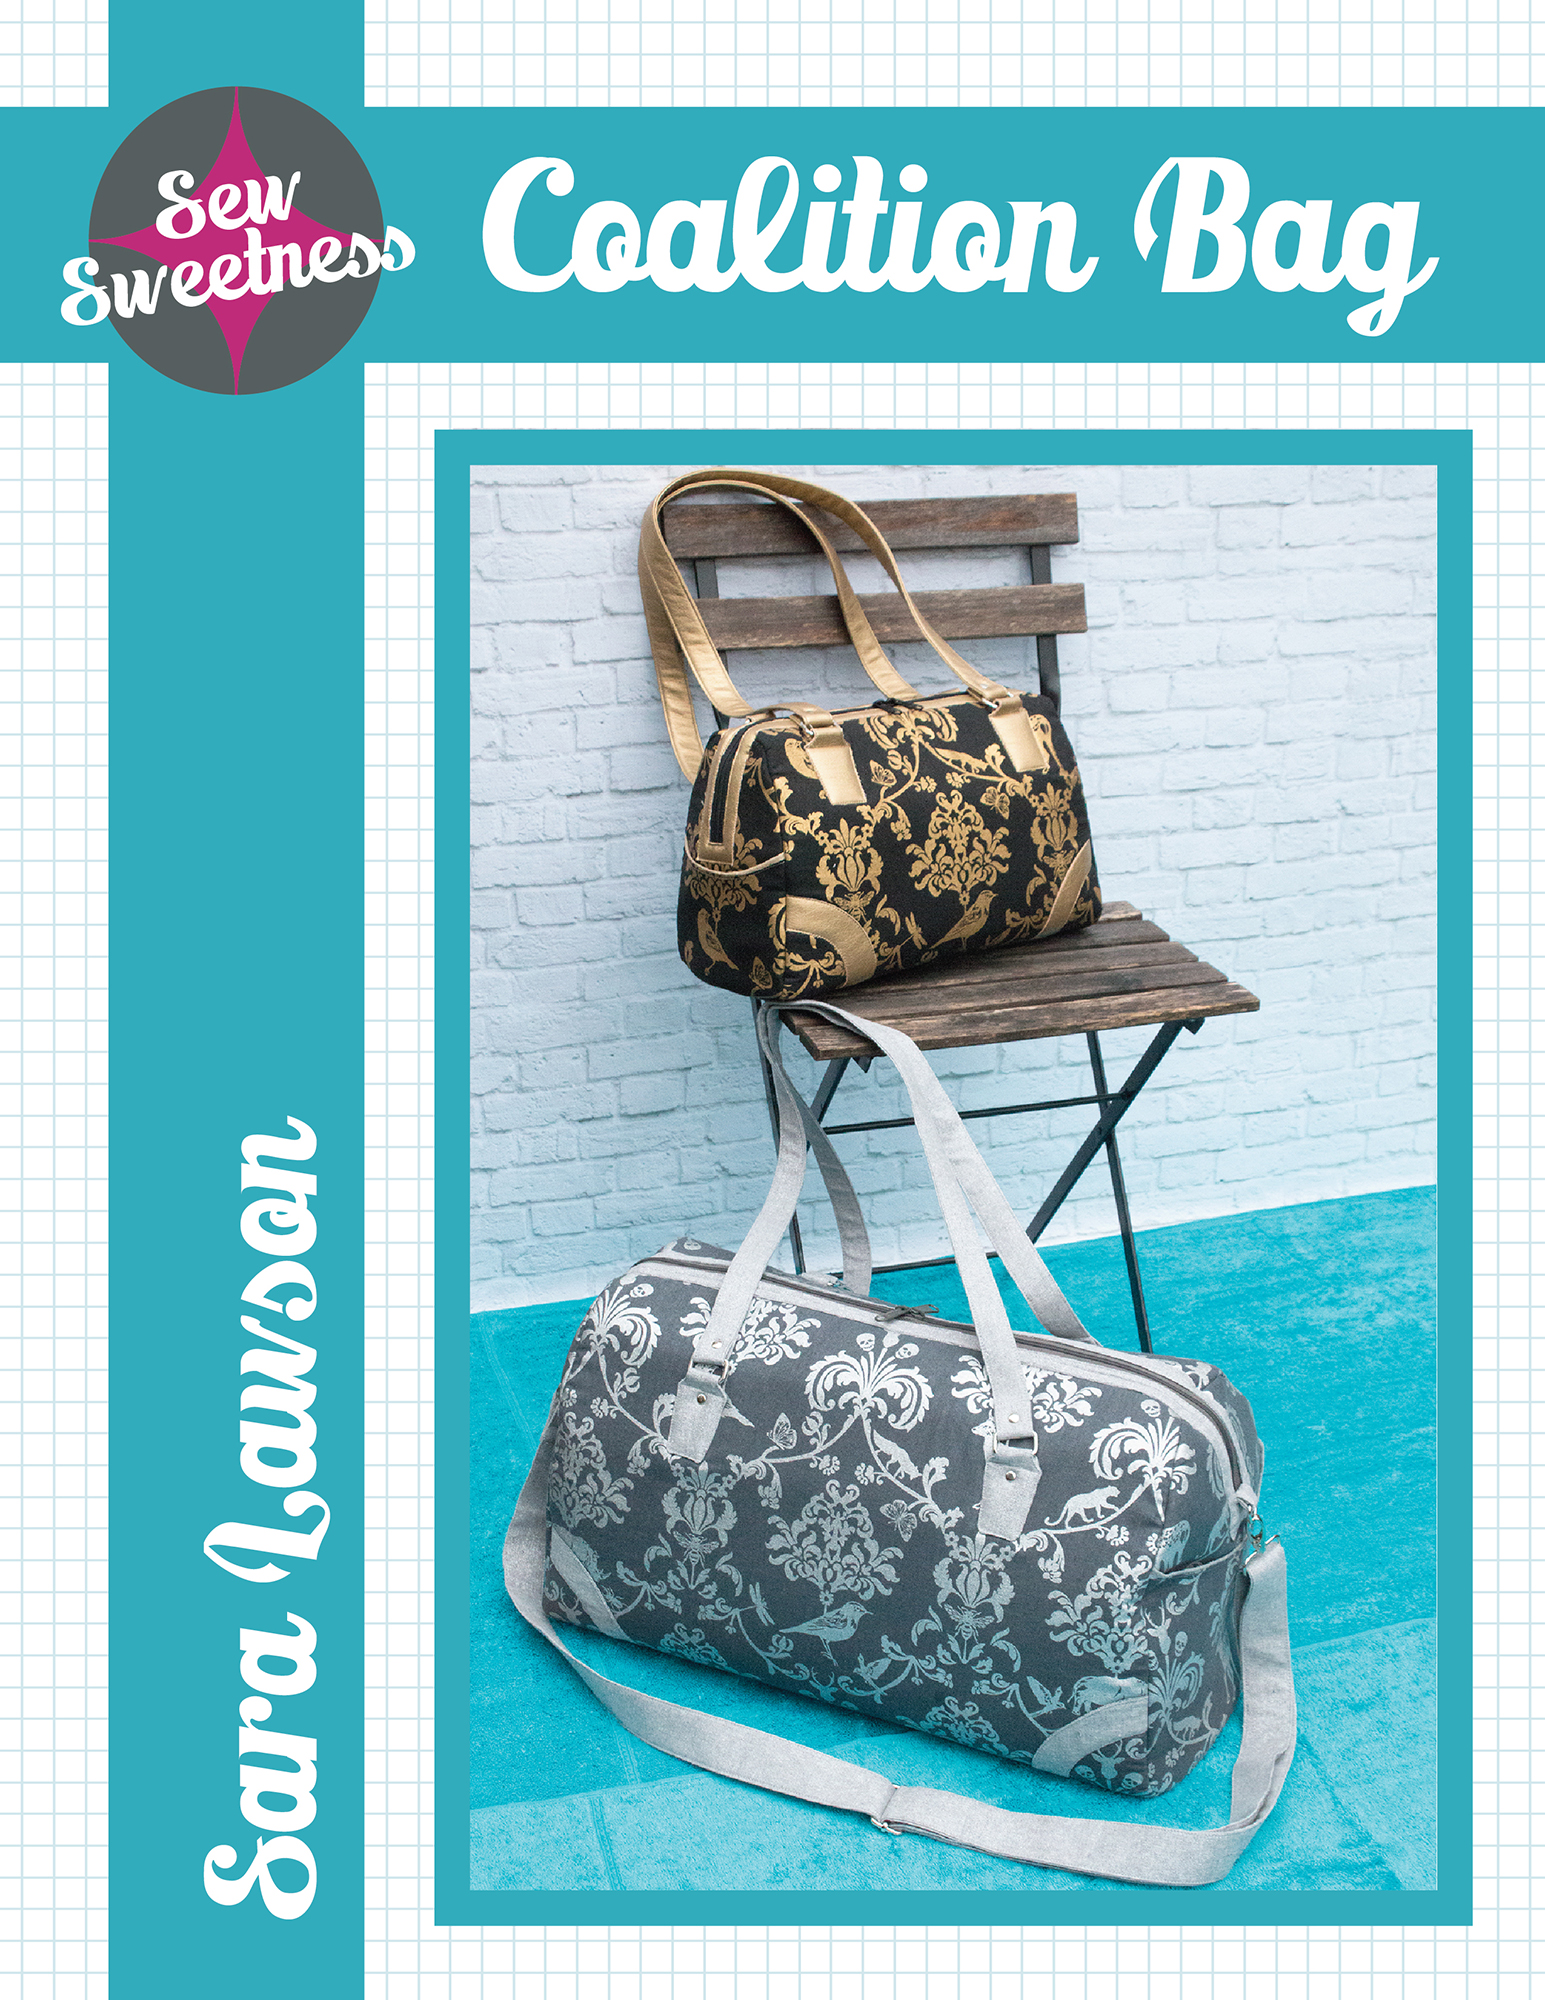 Sew Sweetness Coalition Bag sewing pattern